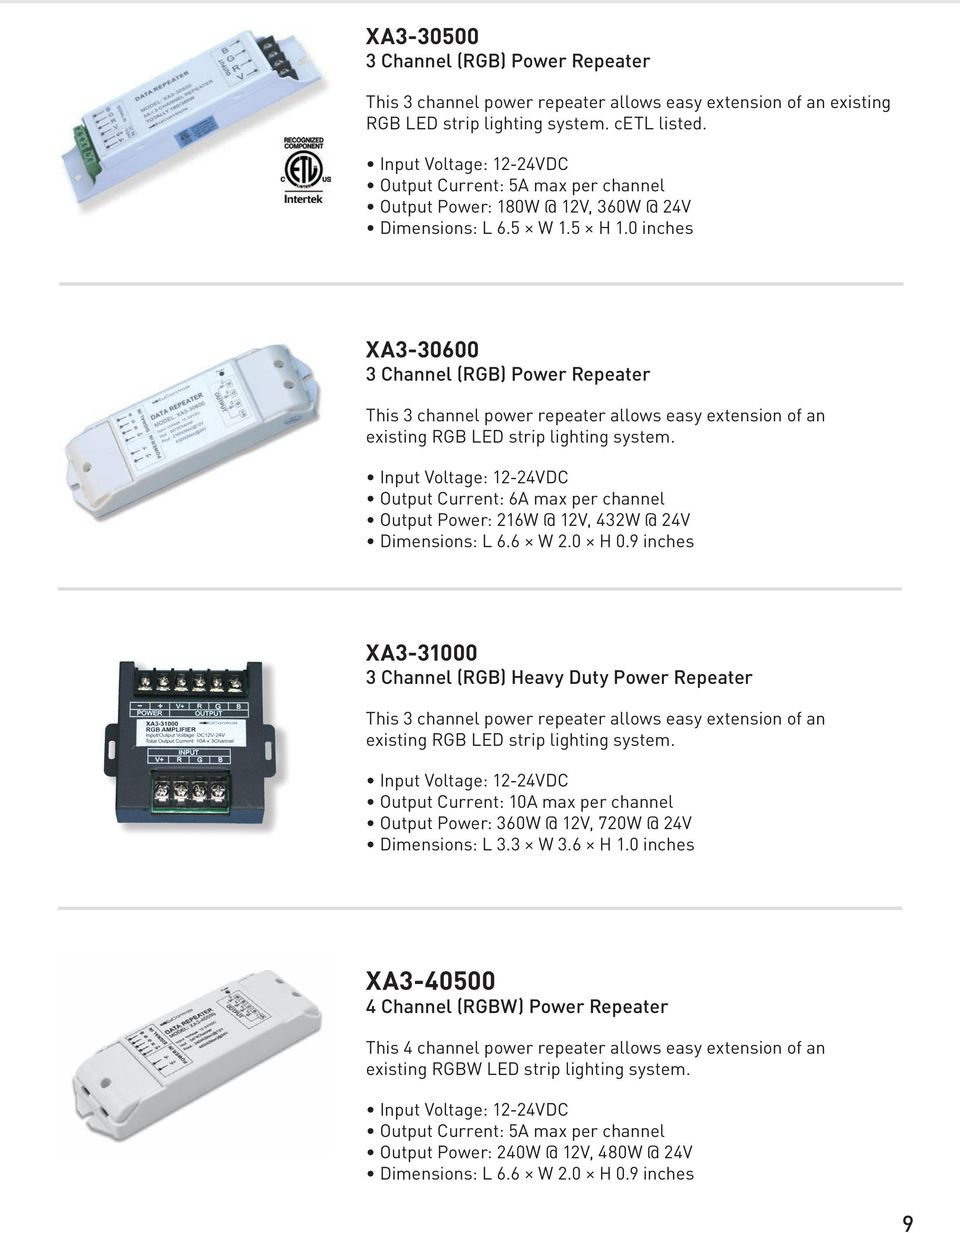 Product Catalog Pdf Home Led Dimmers Dimmer 3 Circuits Rgb 3a Max 0 Inches Xa3 30600 Channel Power Repeater This